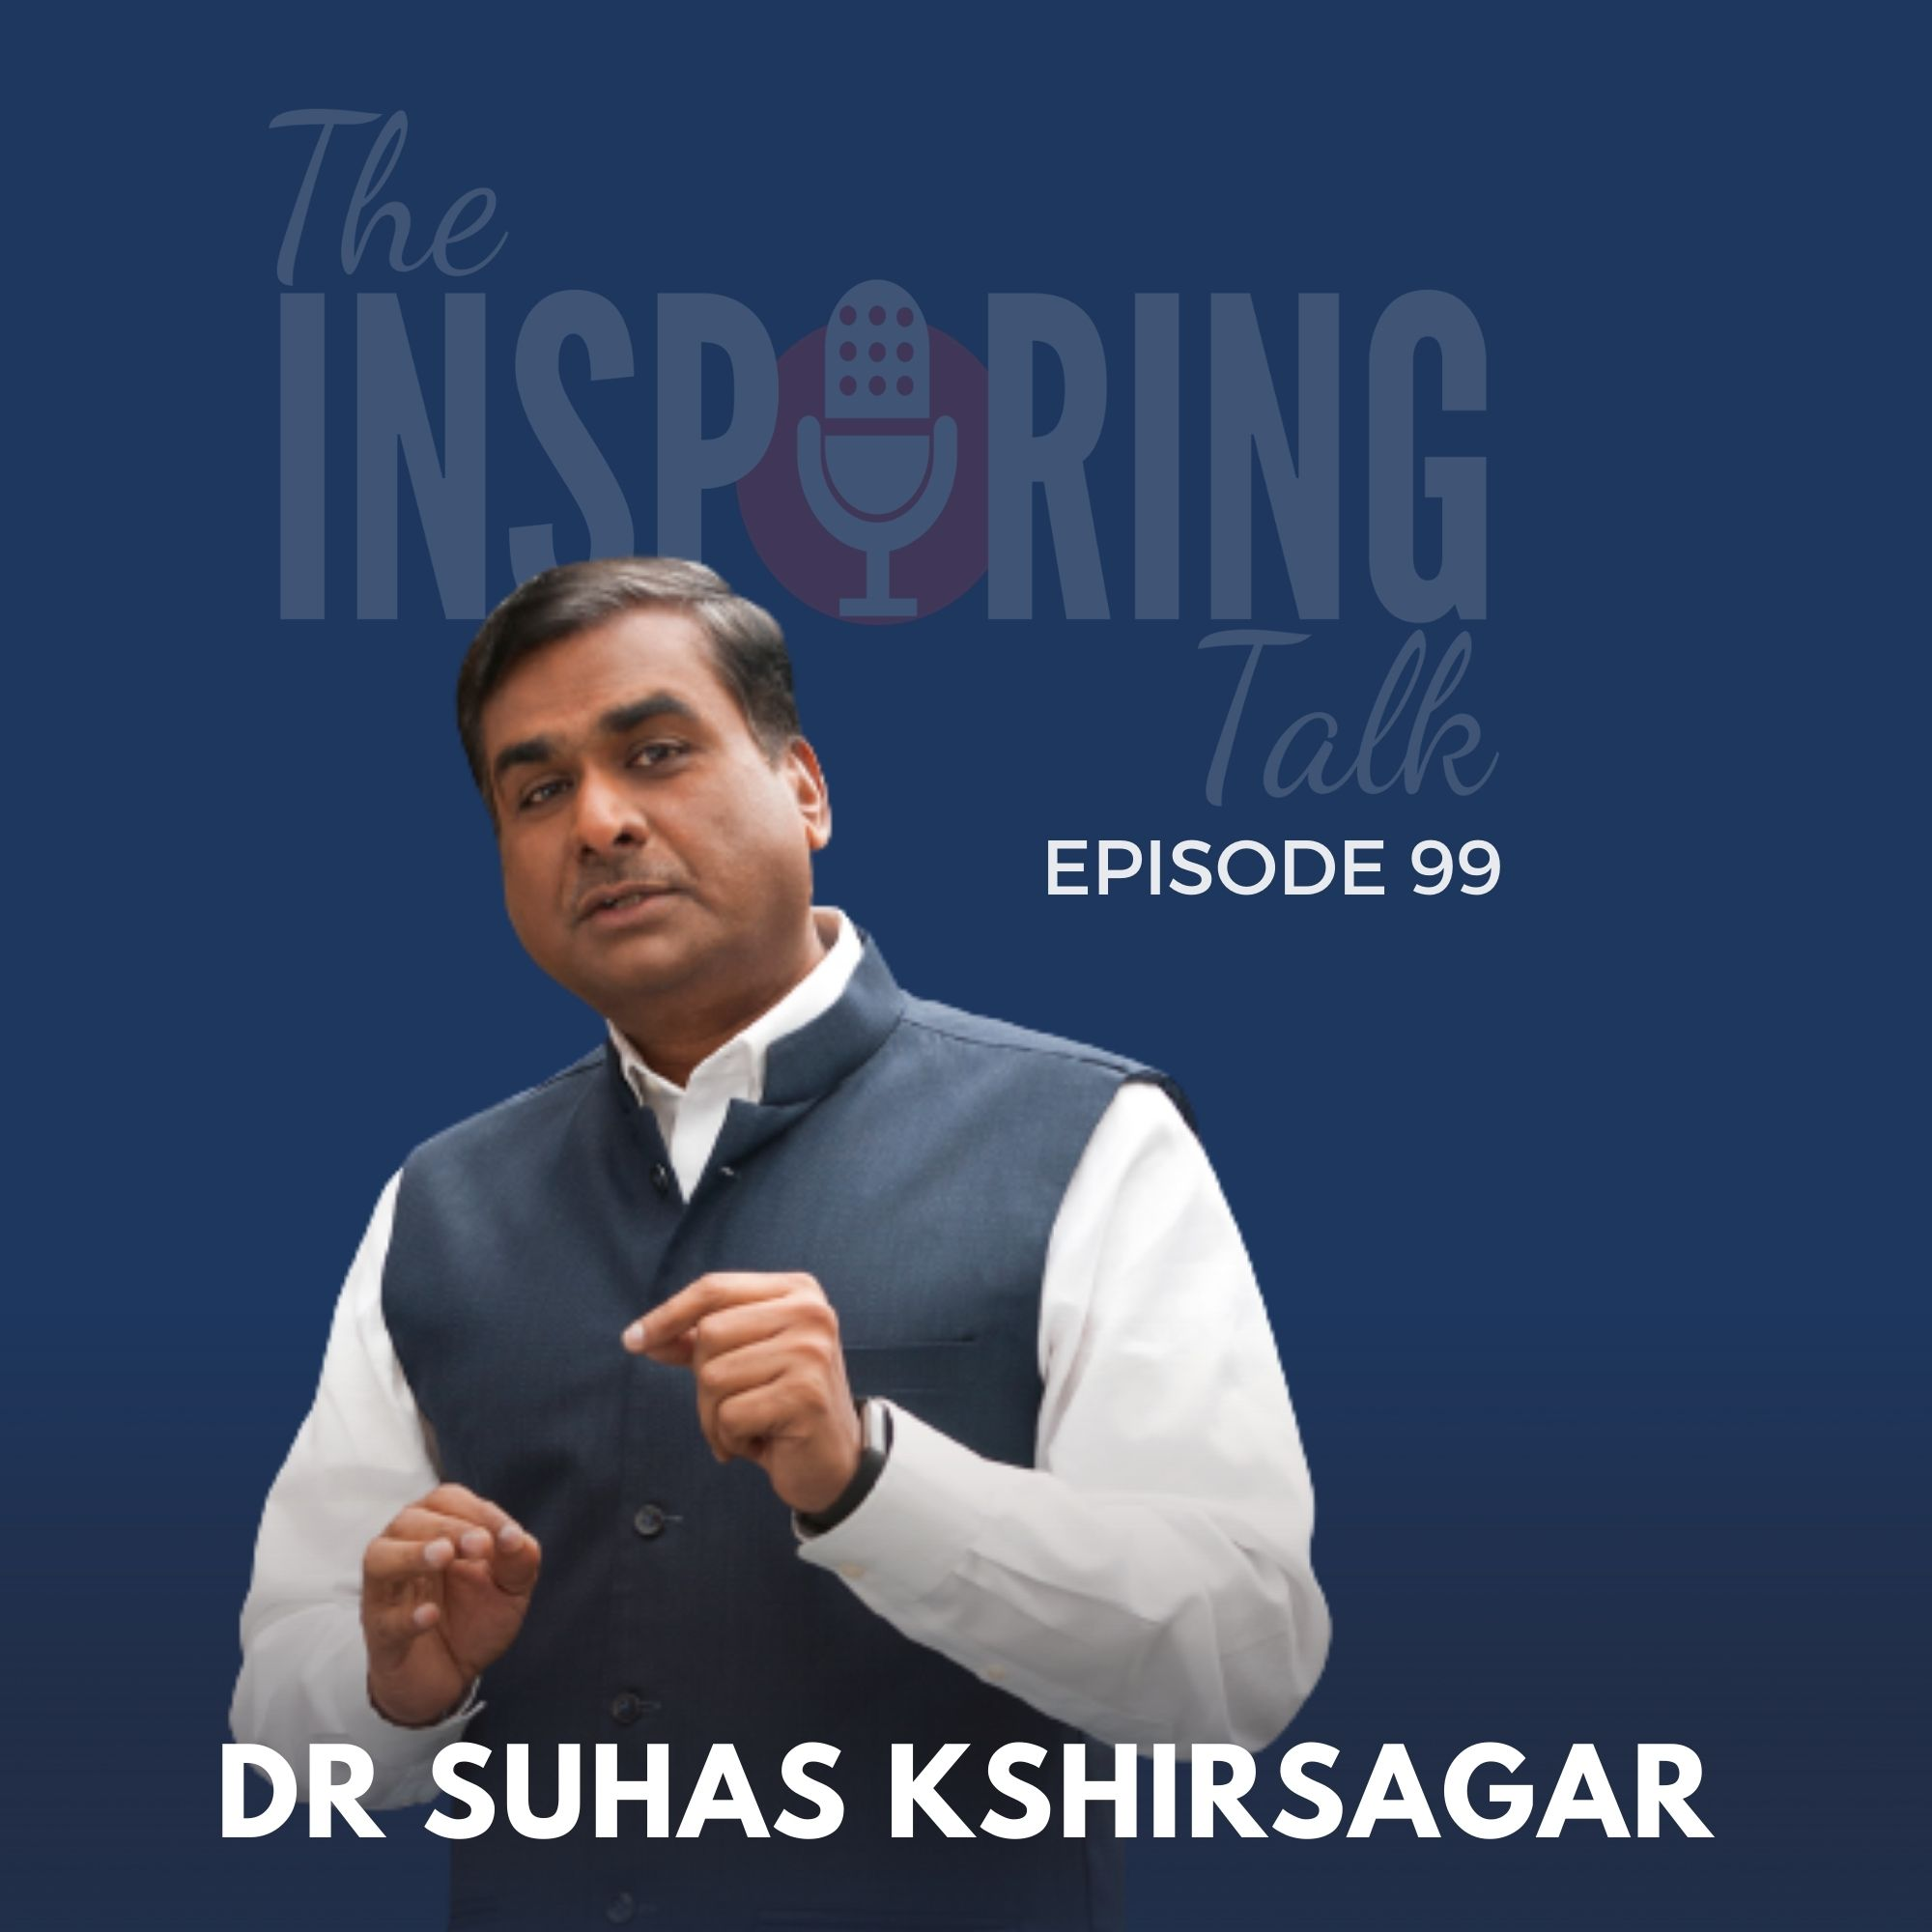 World Renowned Ayurvedic Doctor Reveals the Simplest Hacks to Stay Healthy, Reverse Diseases and Live Longer: TIT99